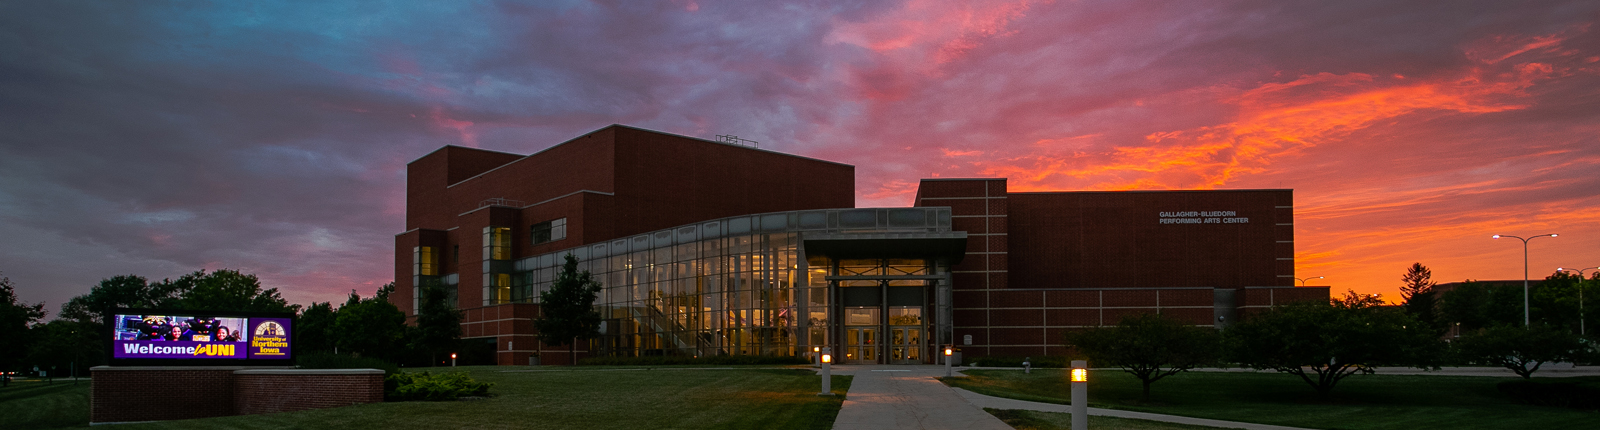 The Gallagher Bluedorn Performing Arts Center at sunset